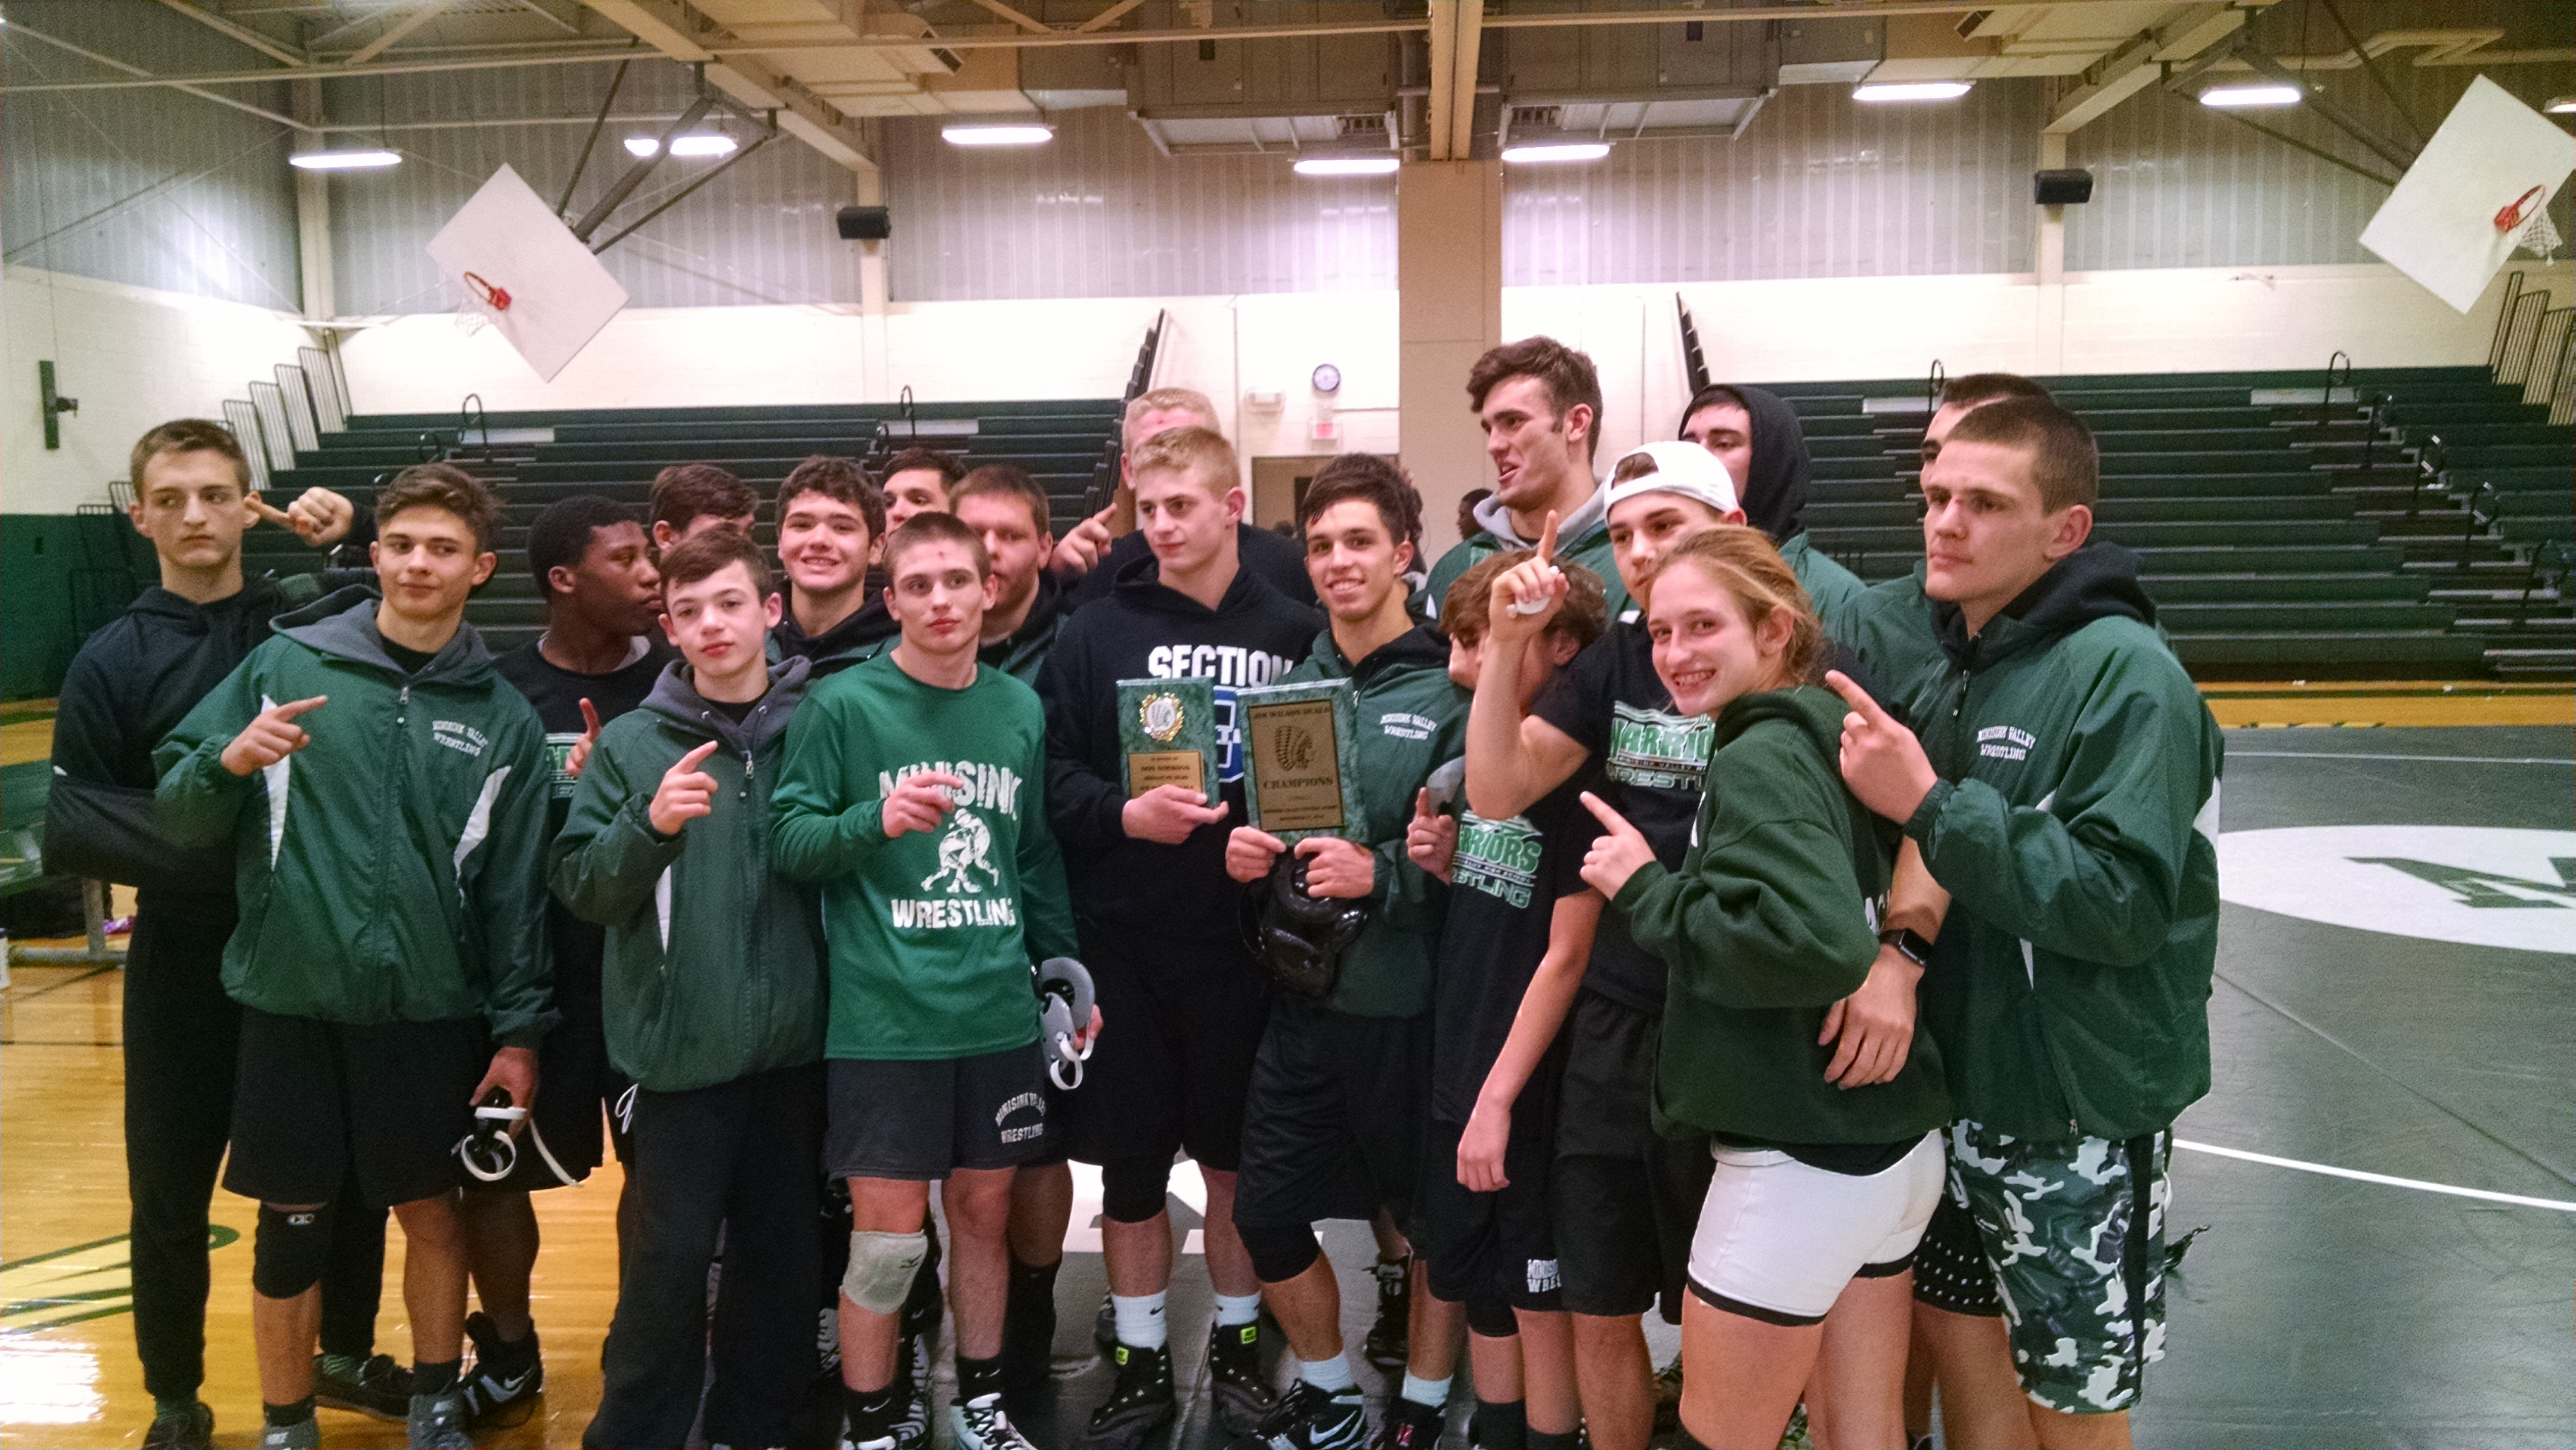 2016 2017 section 9 wrestling wallkill clarkstown north tour nt wallkill crowned 2 champs 3 runner ups and 2 thirds at the clarkstown north tour nt this sunday